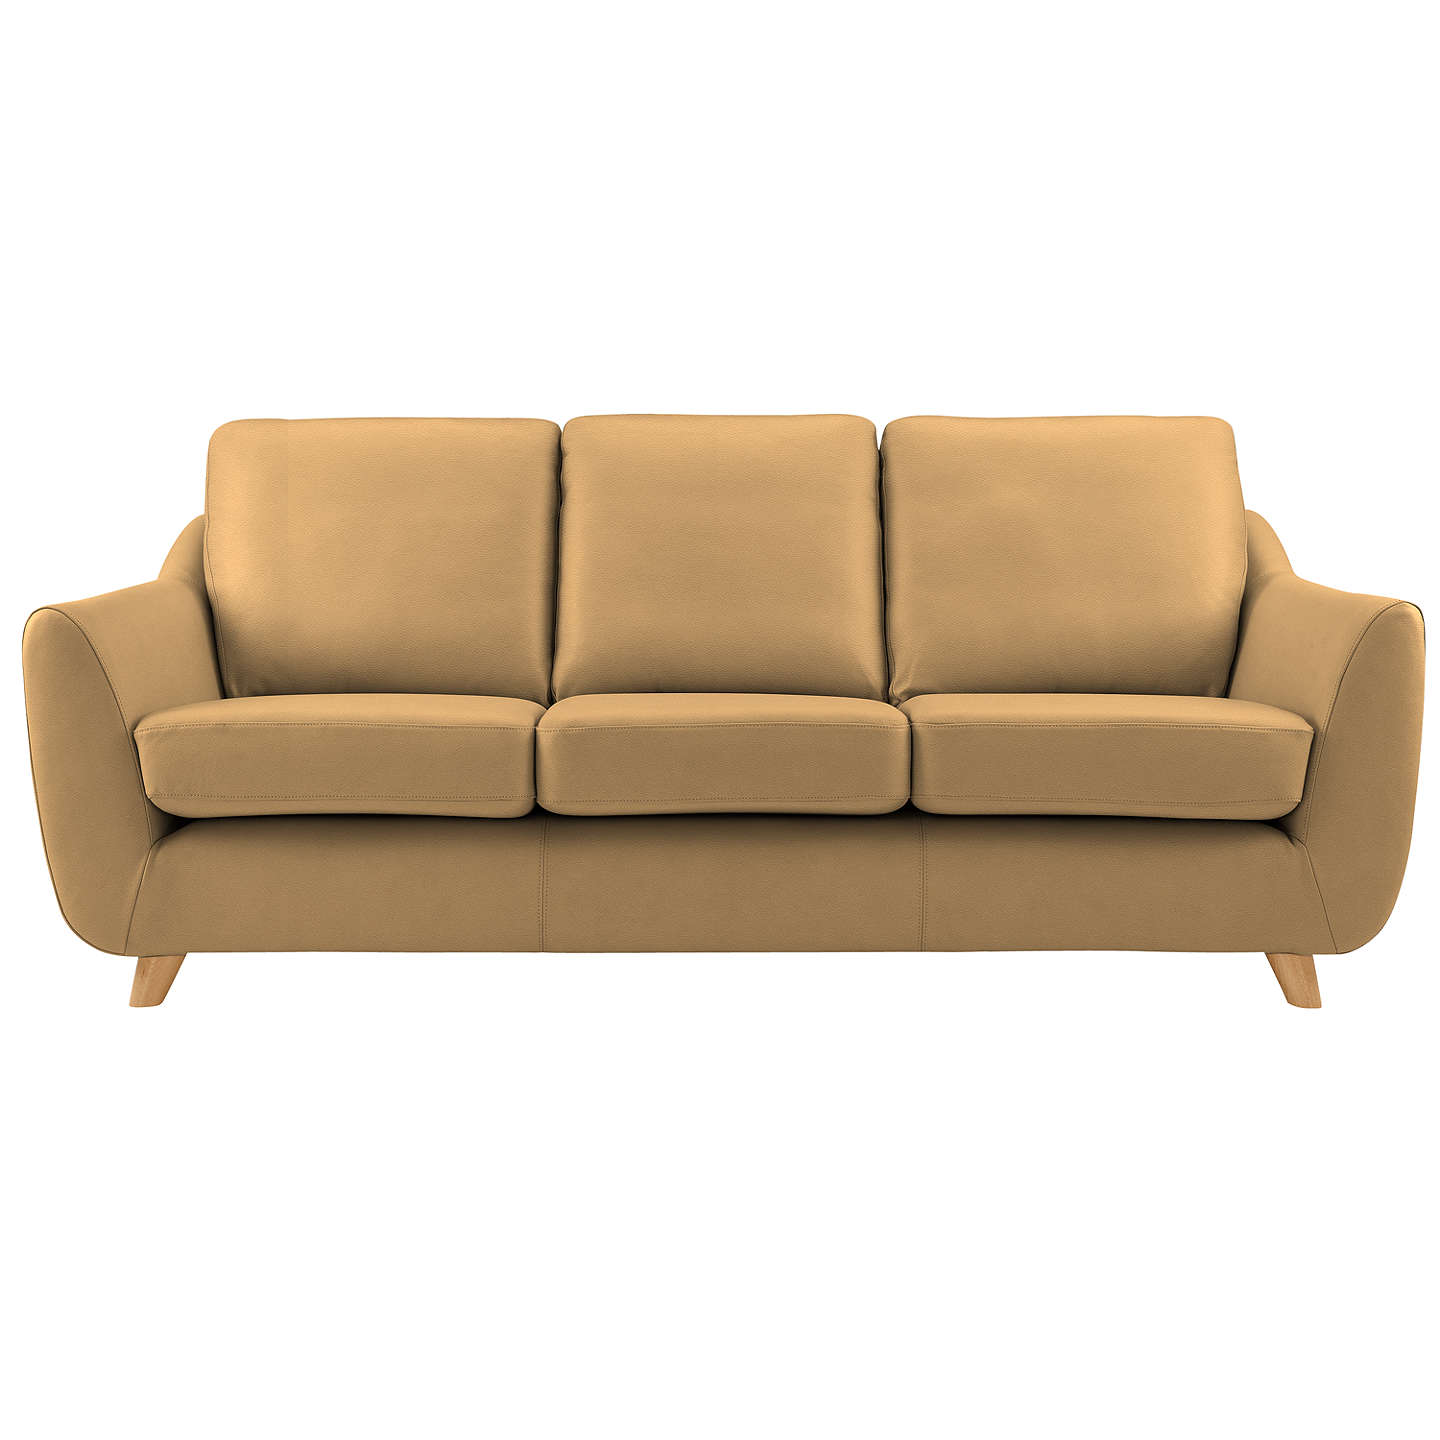 BuyG Plan Vintage The Sixty Seven Leather 3 Seater Sofa, Capri Sand Online at johnlewis.com